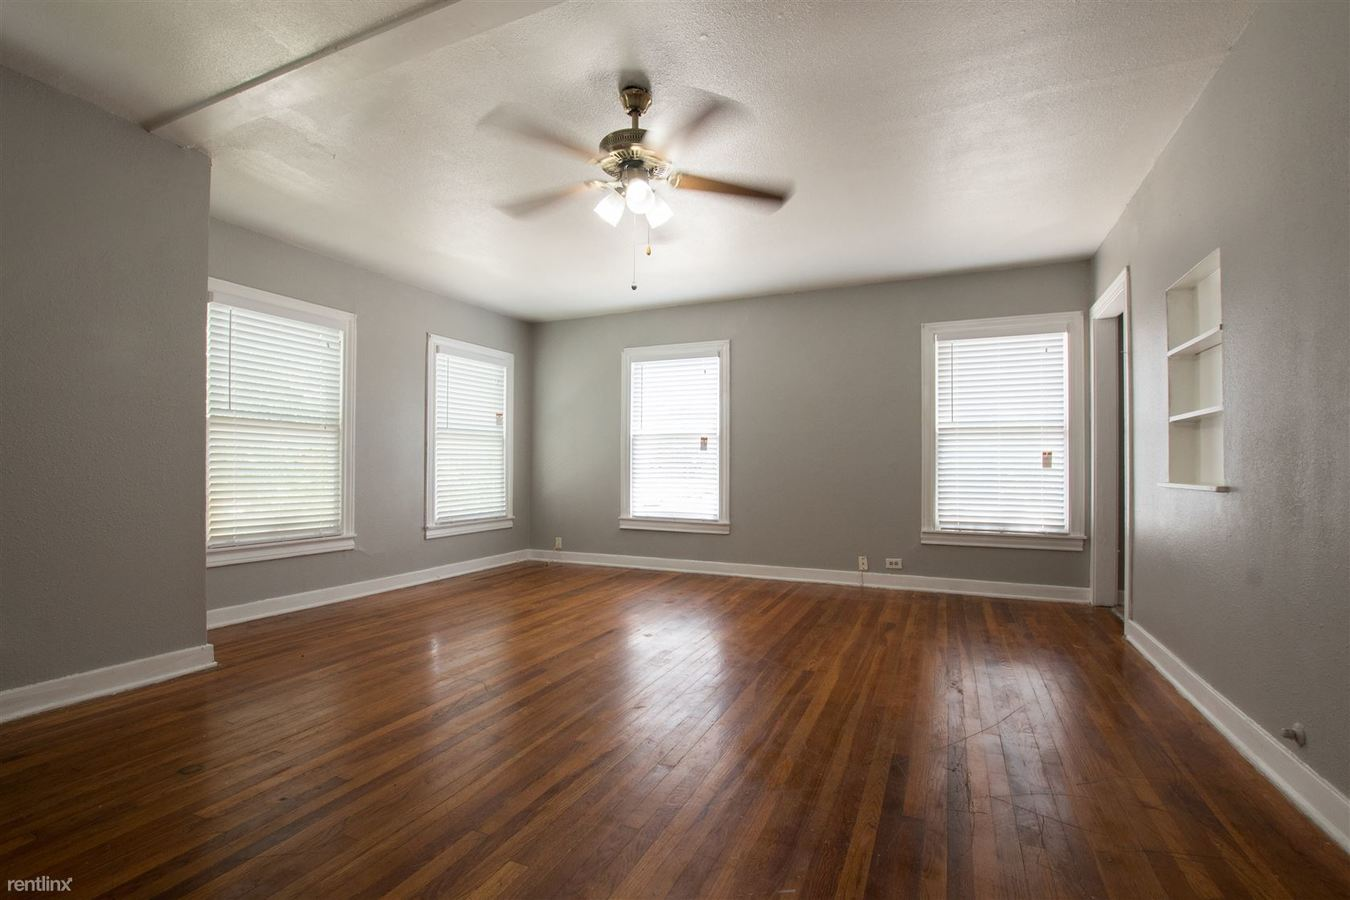 1 Bedroom 1 Bathroom Apartment for rent at 724 E Grayson St in San Antonio, TX